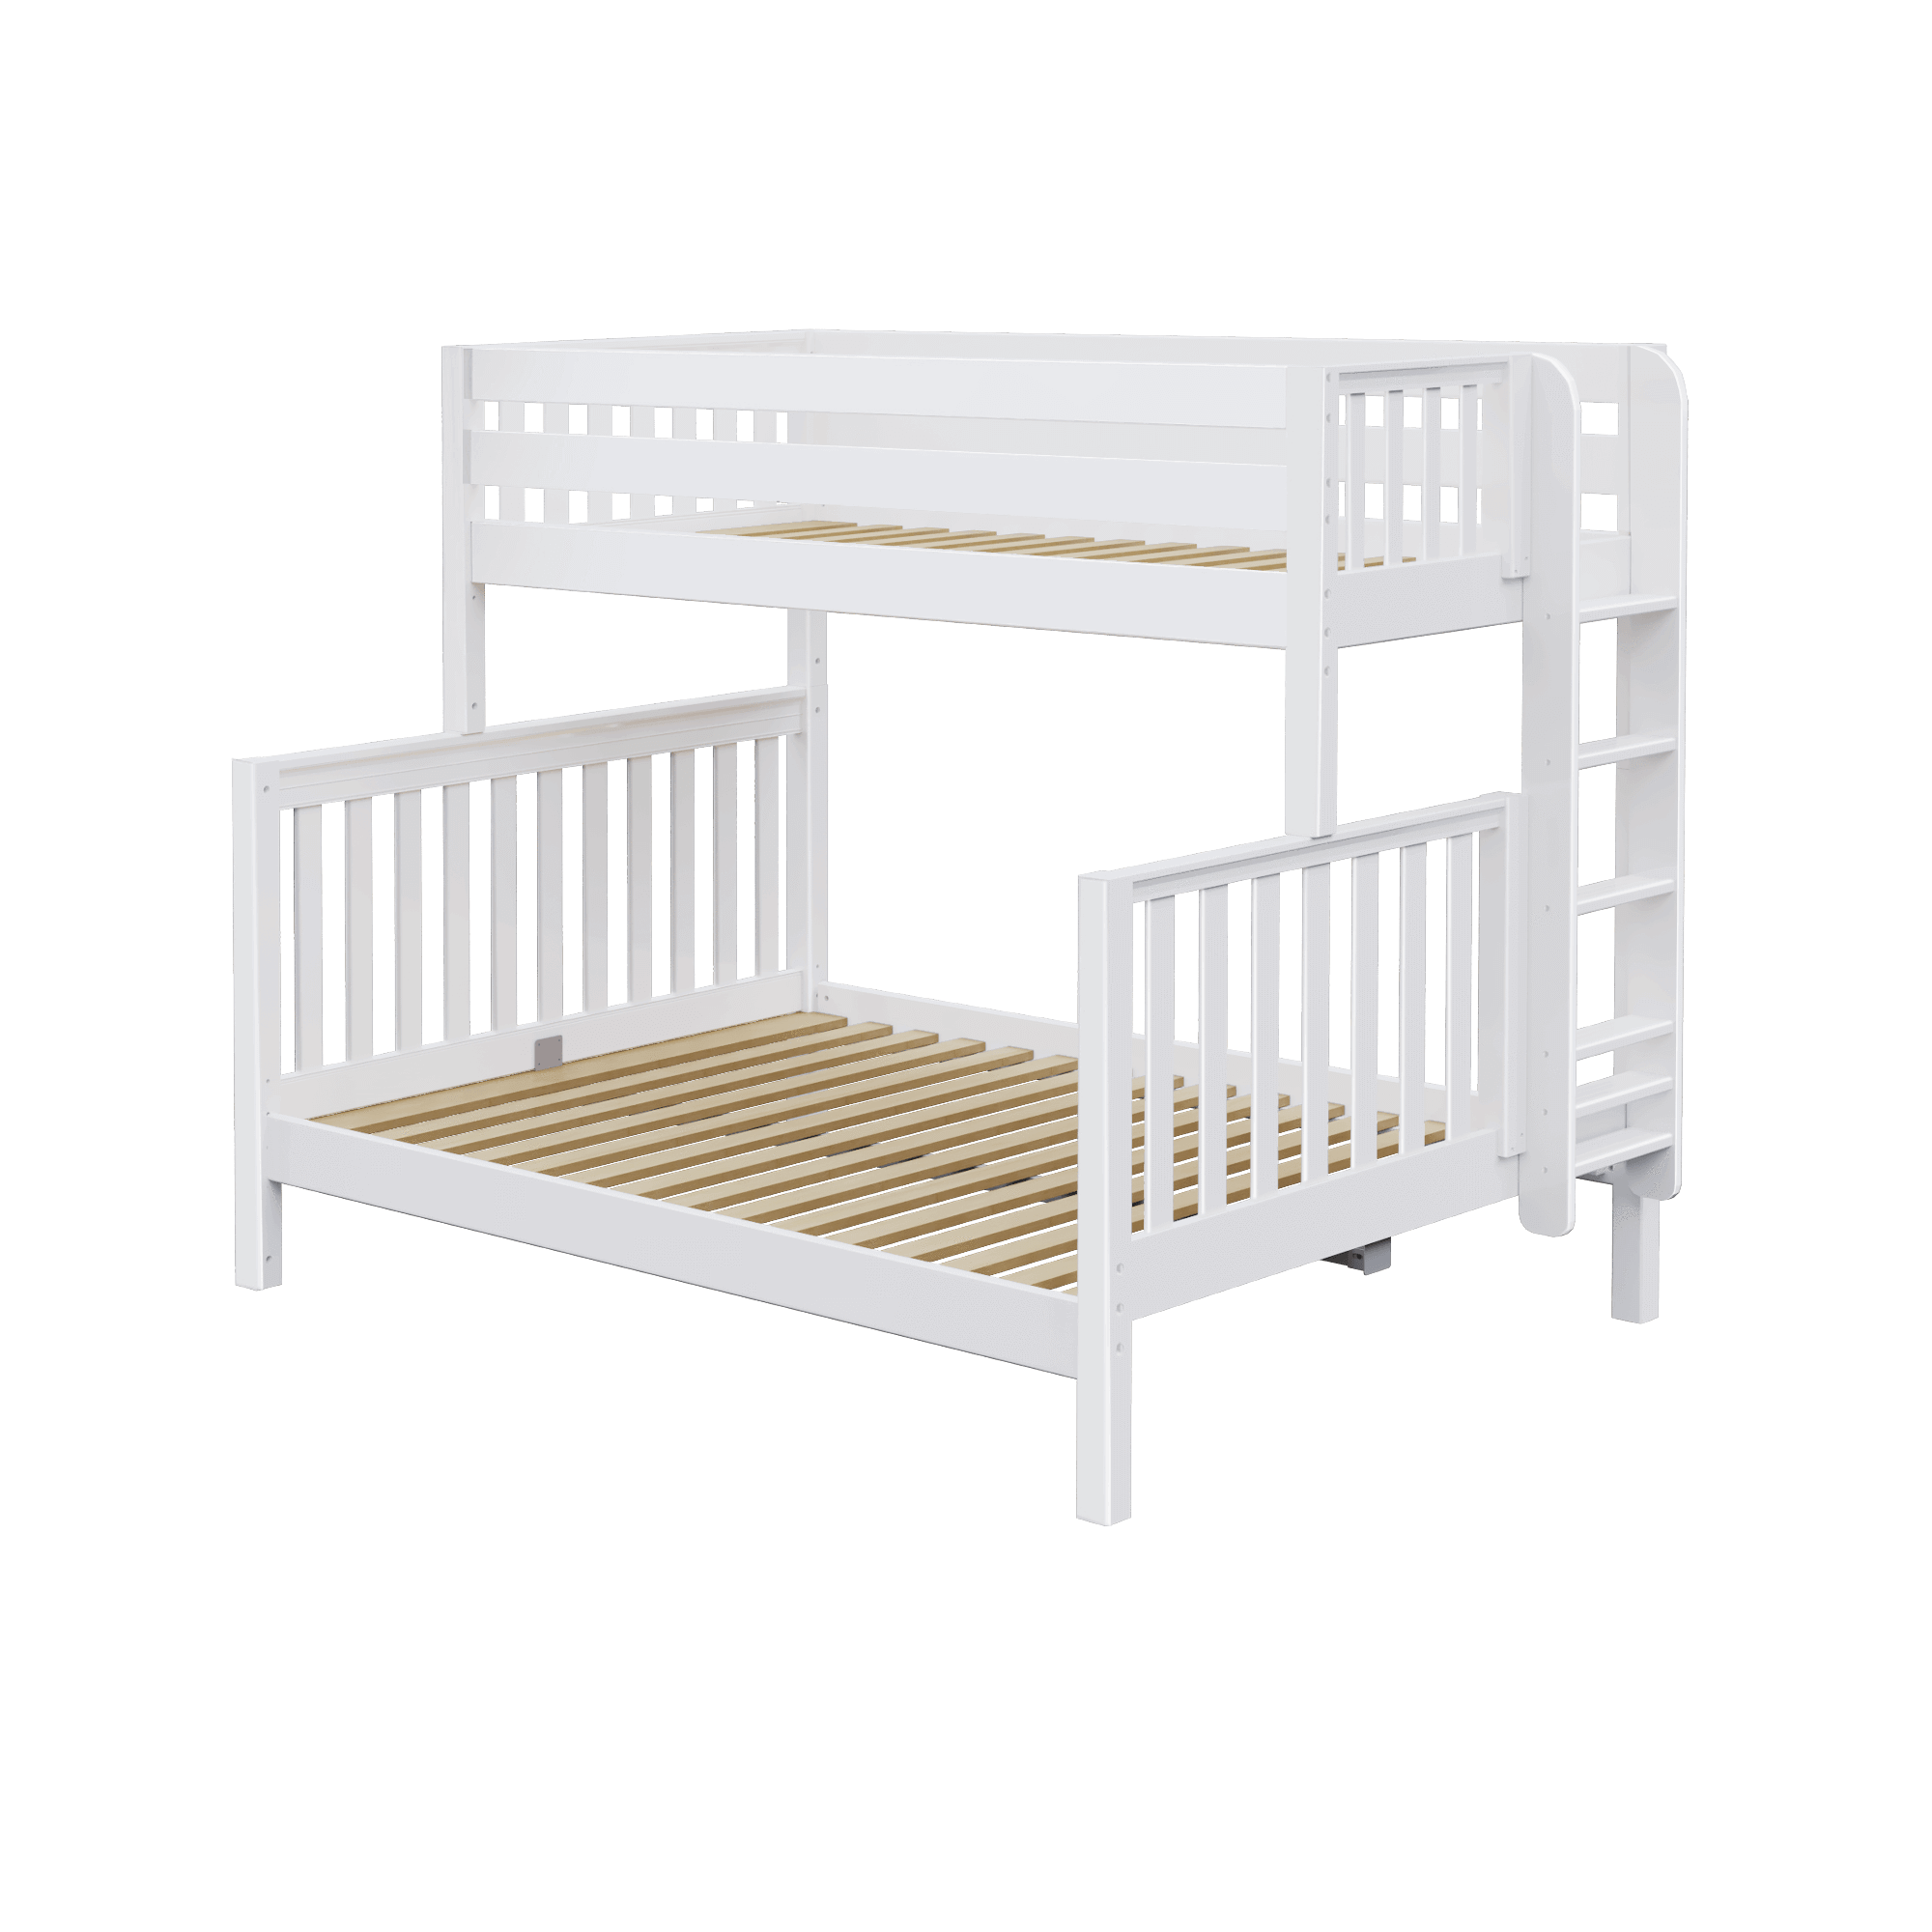 High Twin Xl Over Queen Bunk Bed With Ladder Queen Bunk Beds Bunk Beds Kids Bedroom Sets